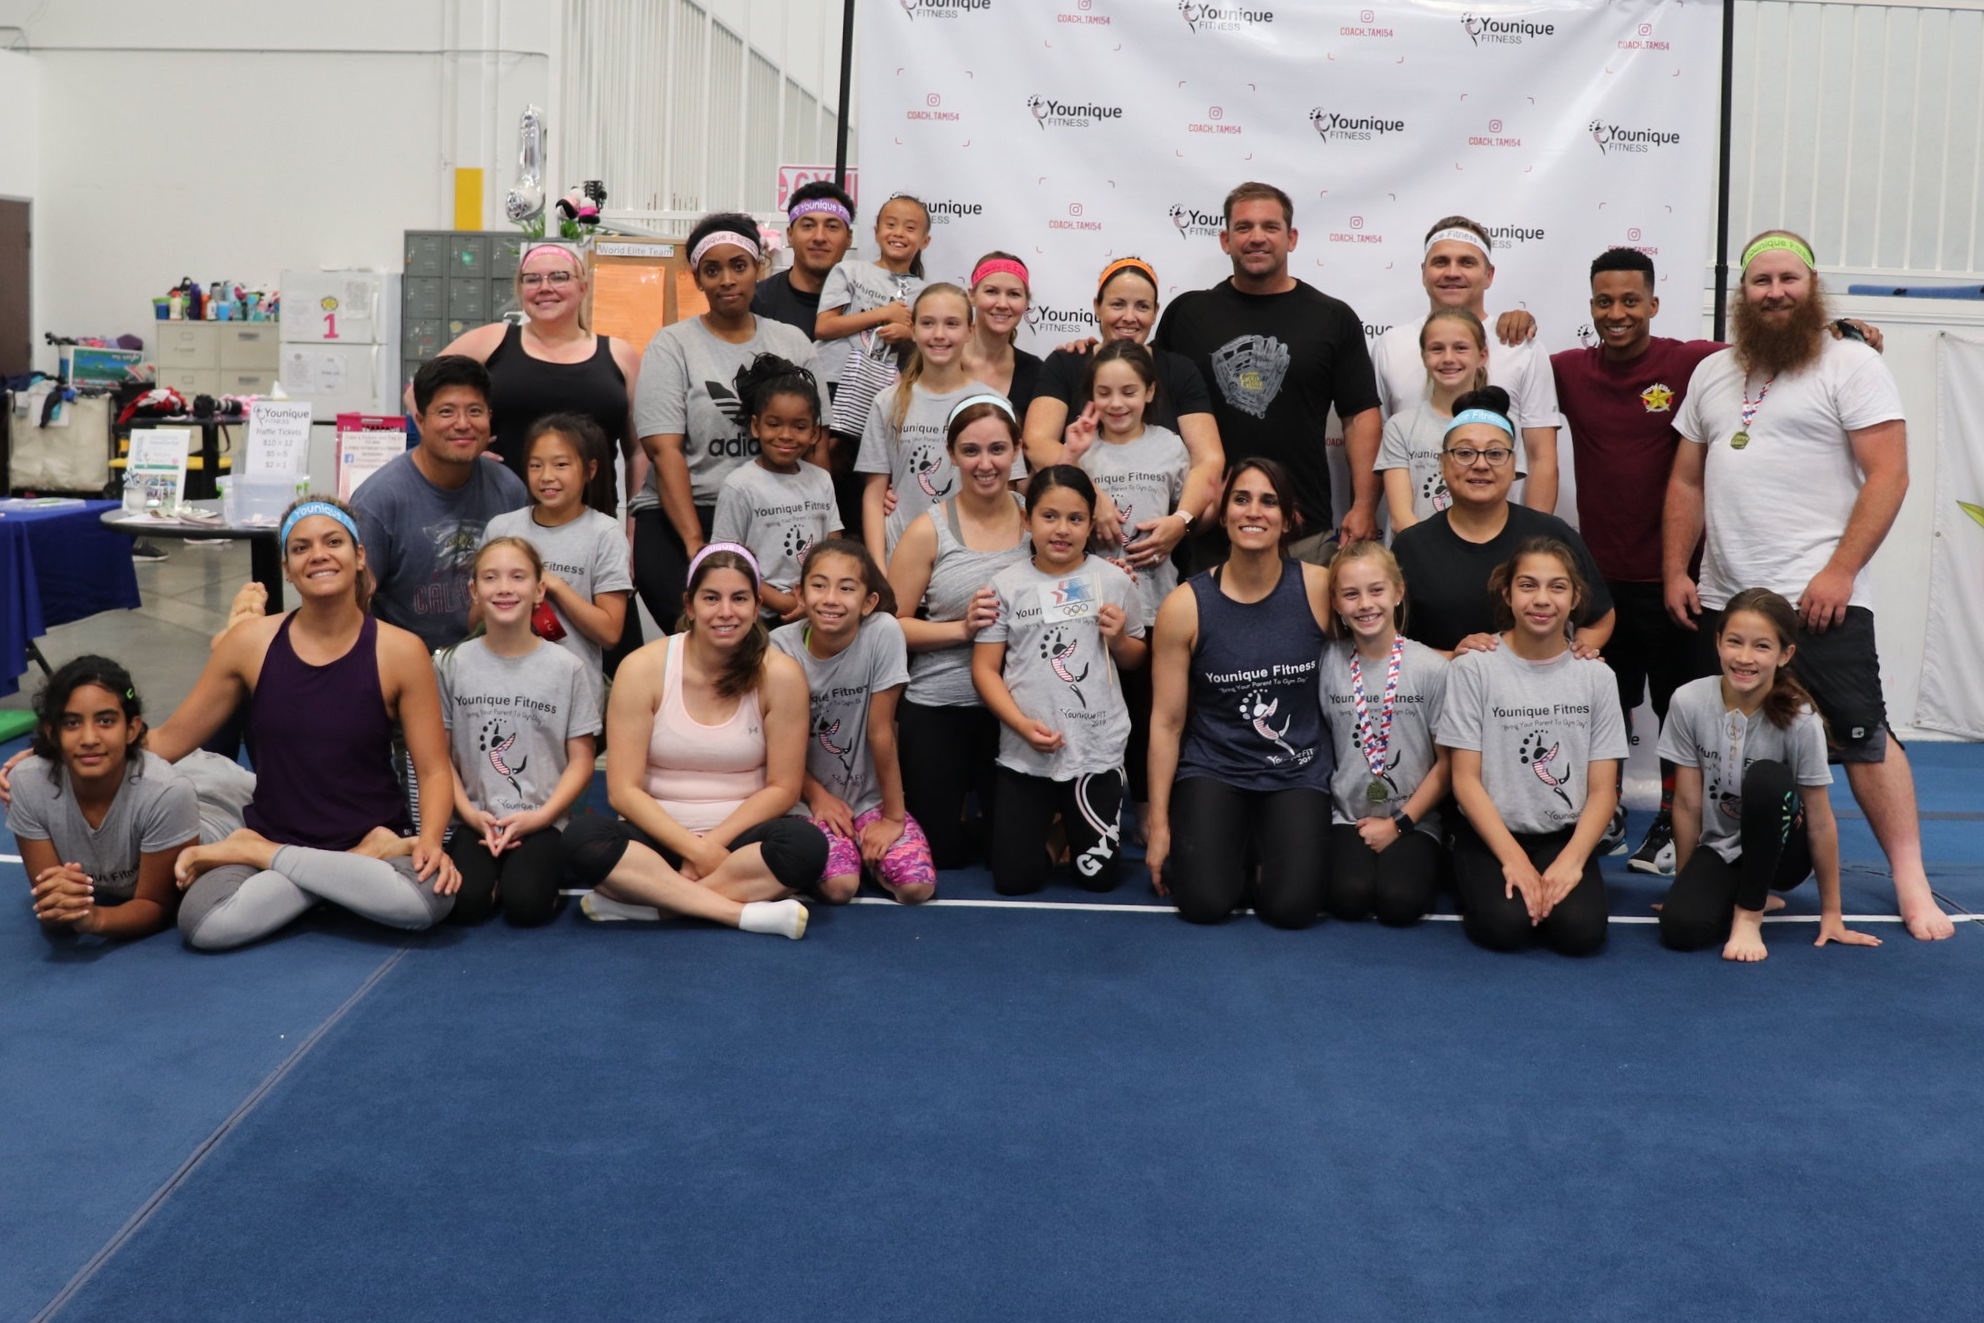 """""""Bring Your Parent To Gym Day"""" - May 19th, 2019 - Hosted at any gymnastics, cheer gym, outdoor/indoor facility.This event is super fun. Get your parents to compete against you on varies fitness challenges that will have you laughing."""